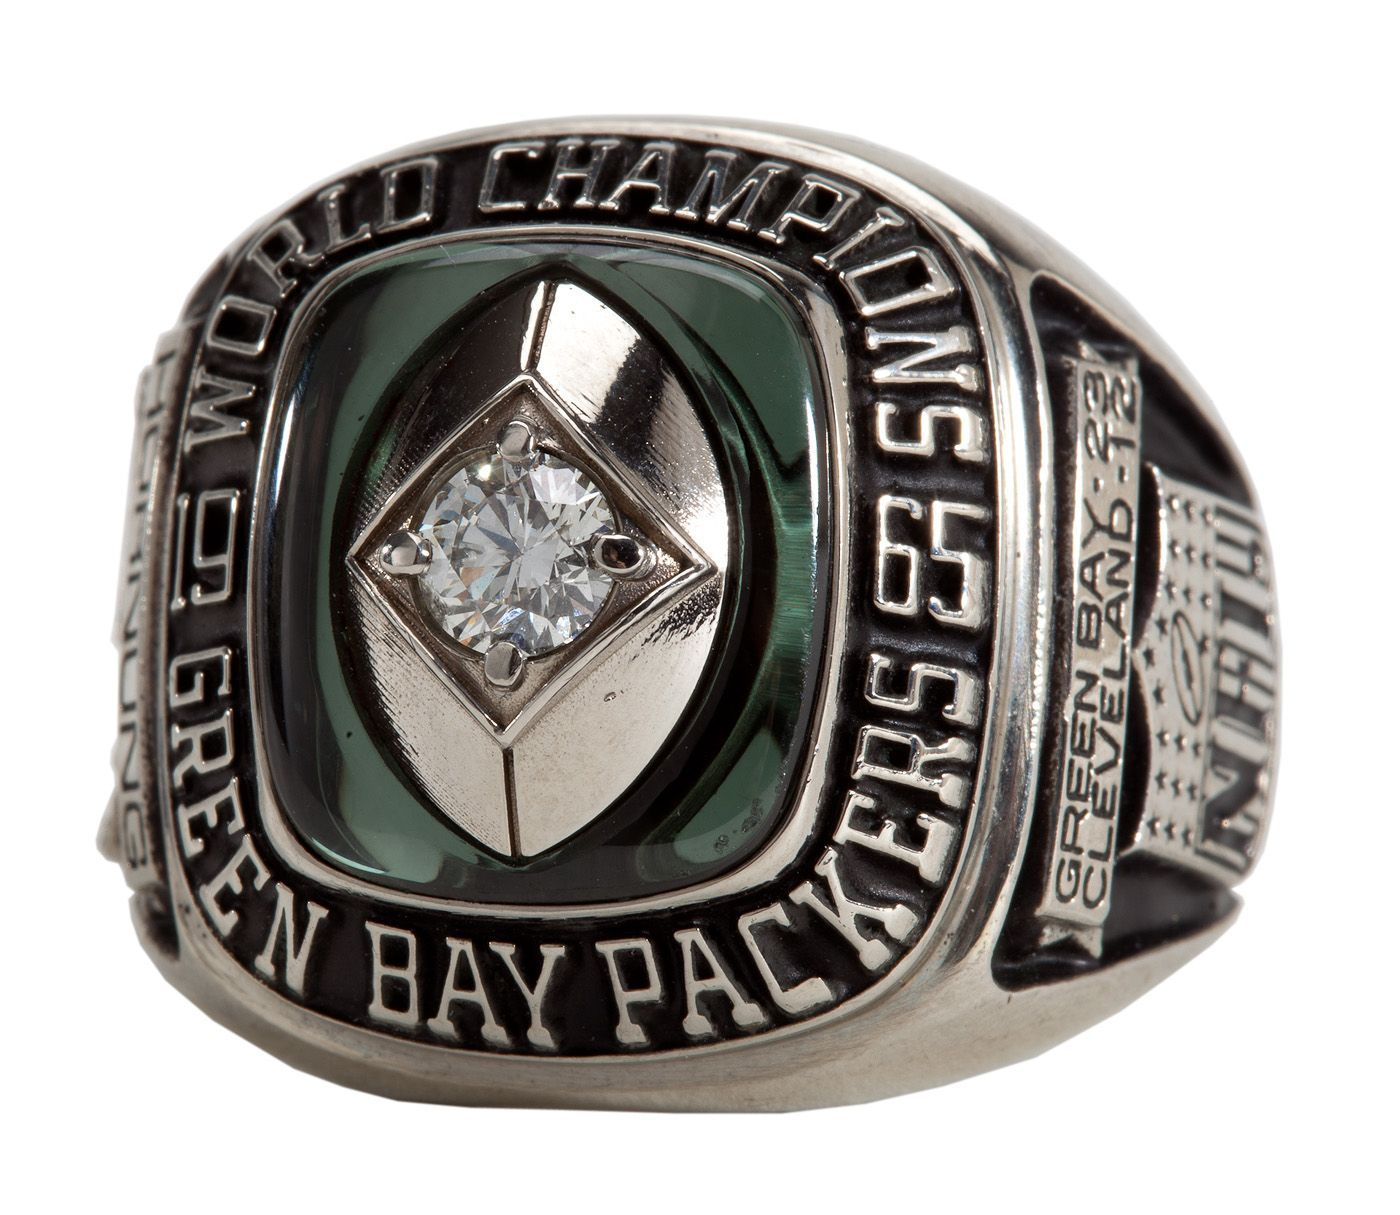 Paul Hornung S 1965 Green Bay Packers Nfl Championship Ring Reissue Hornung Loa With Images Nfl Packers Nfl Green Bay Go Packers